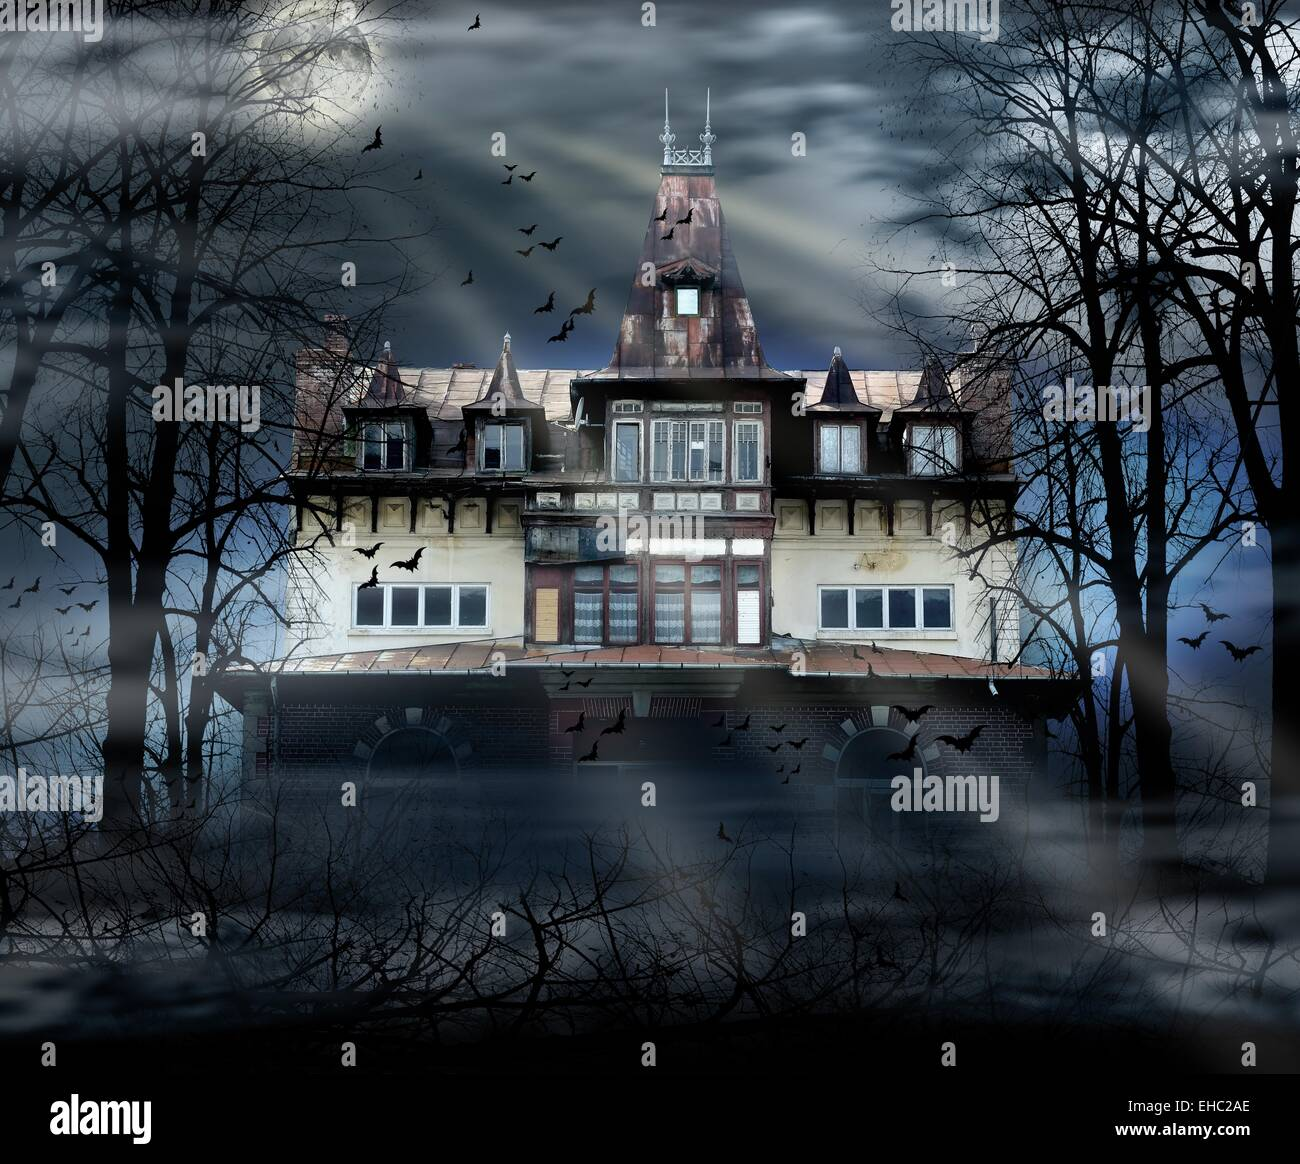 Haunted house with dark scary horror atmosphere - Stock Image